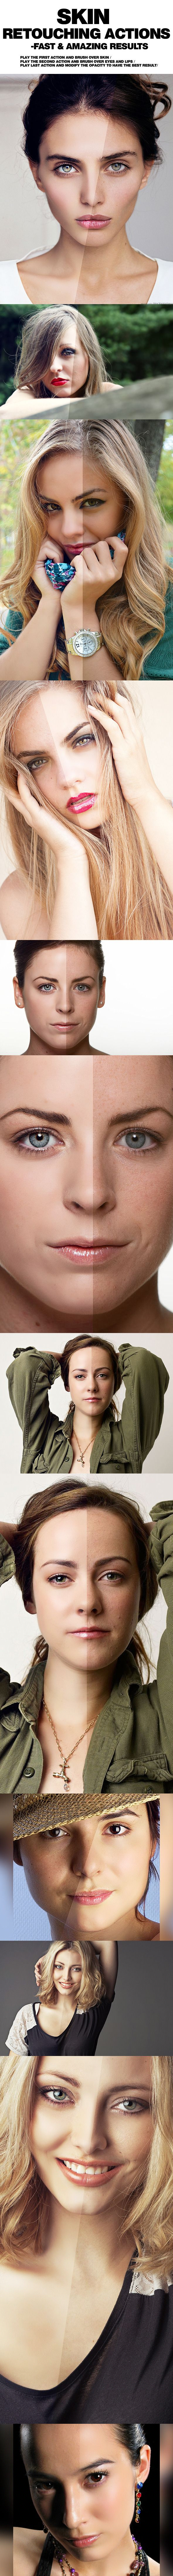 PRO Skin Retouching Actions - Photo Effects Actions